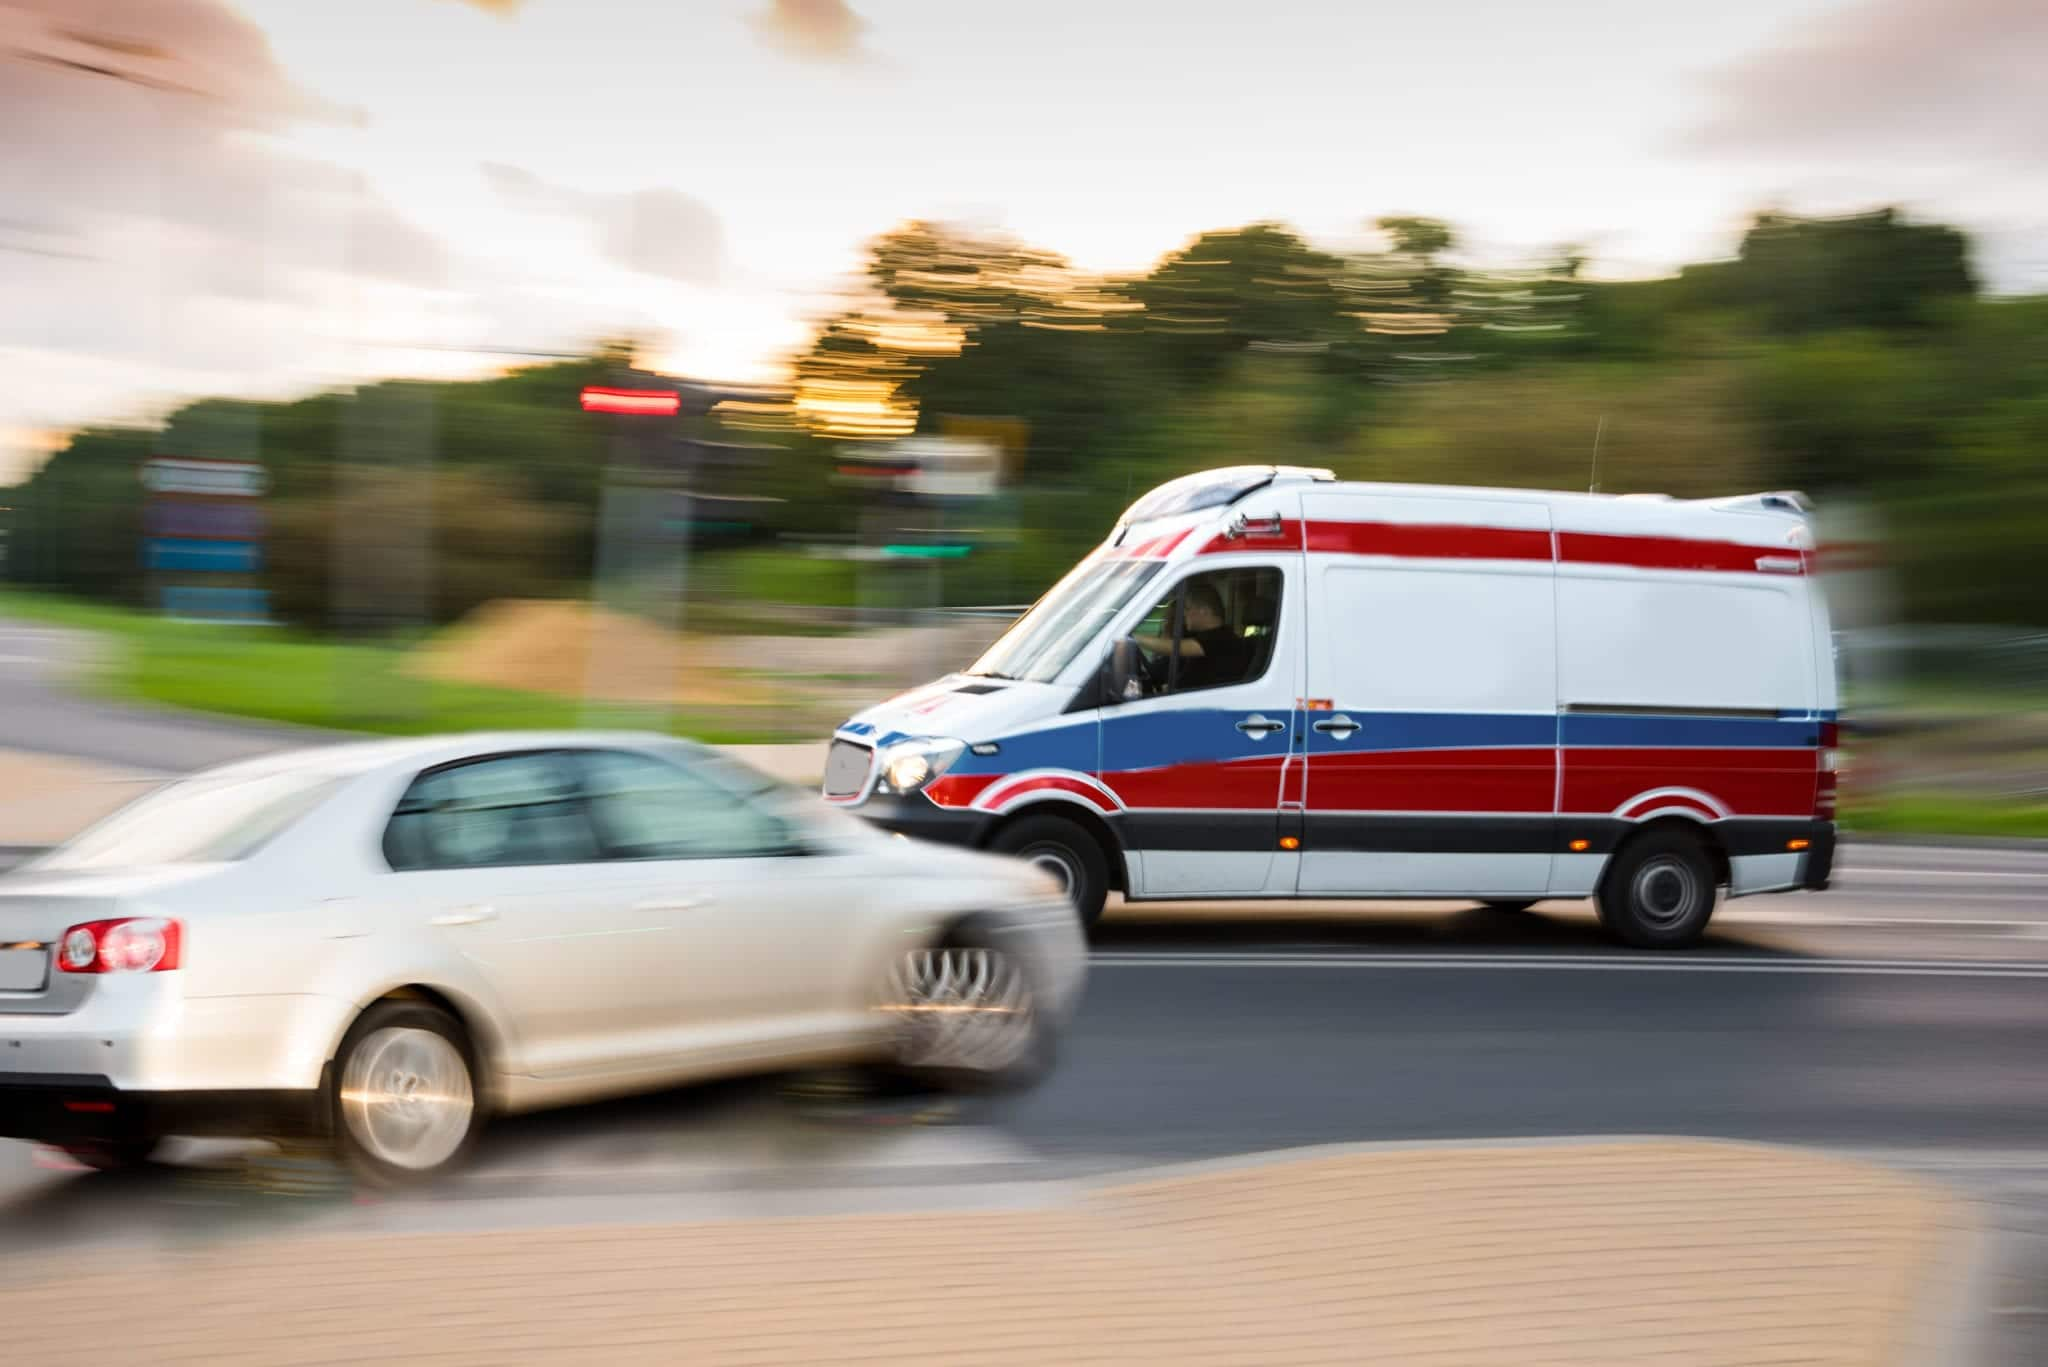 My Florida Ambulance Got Into a Wreck -- Can I Sue?